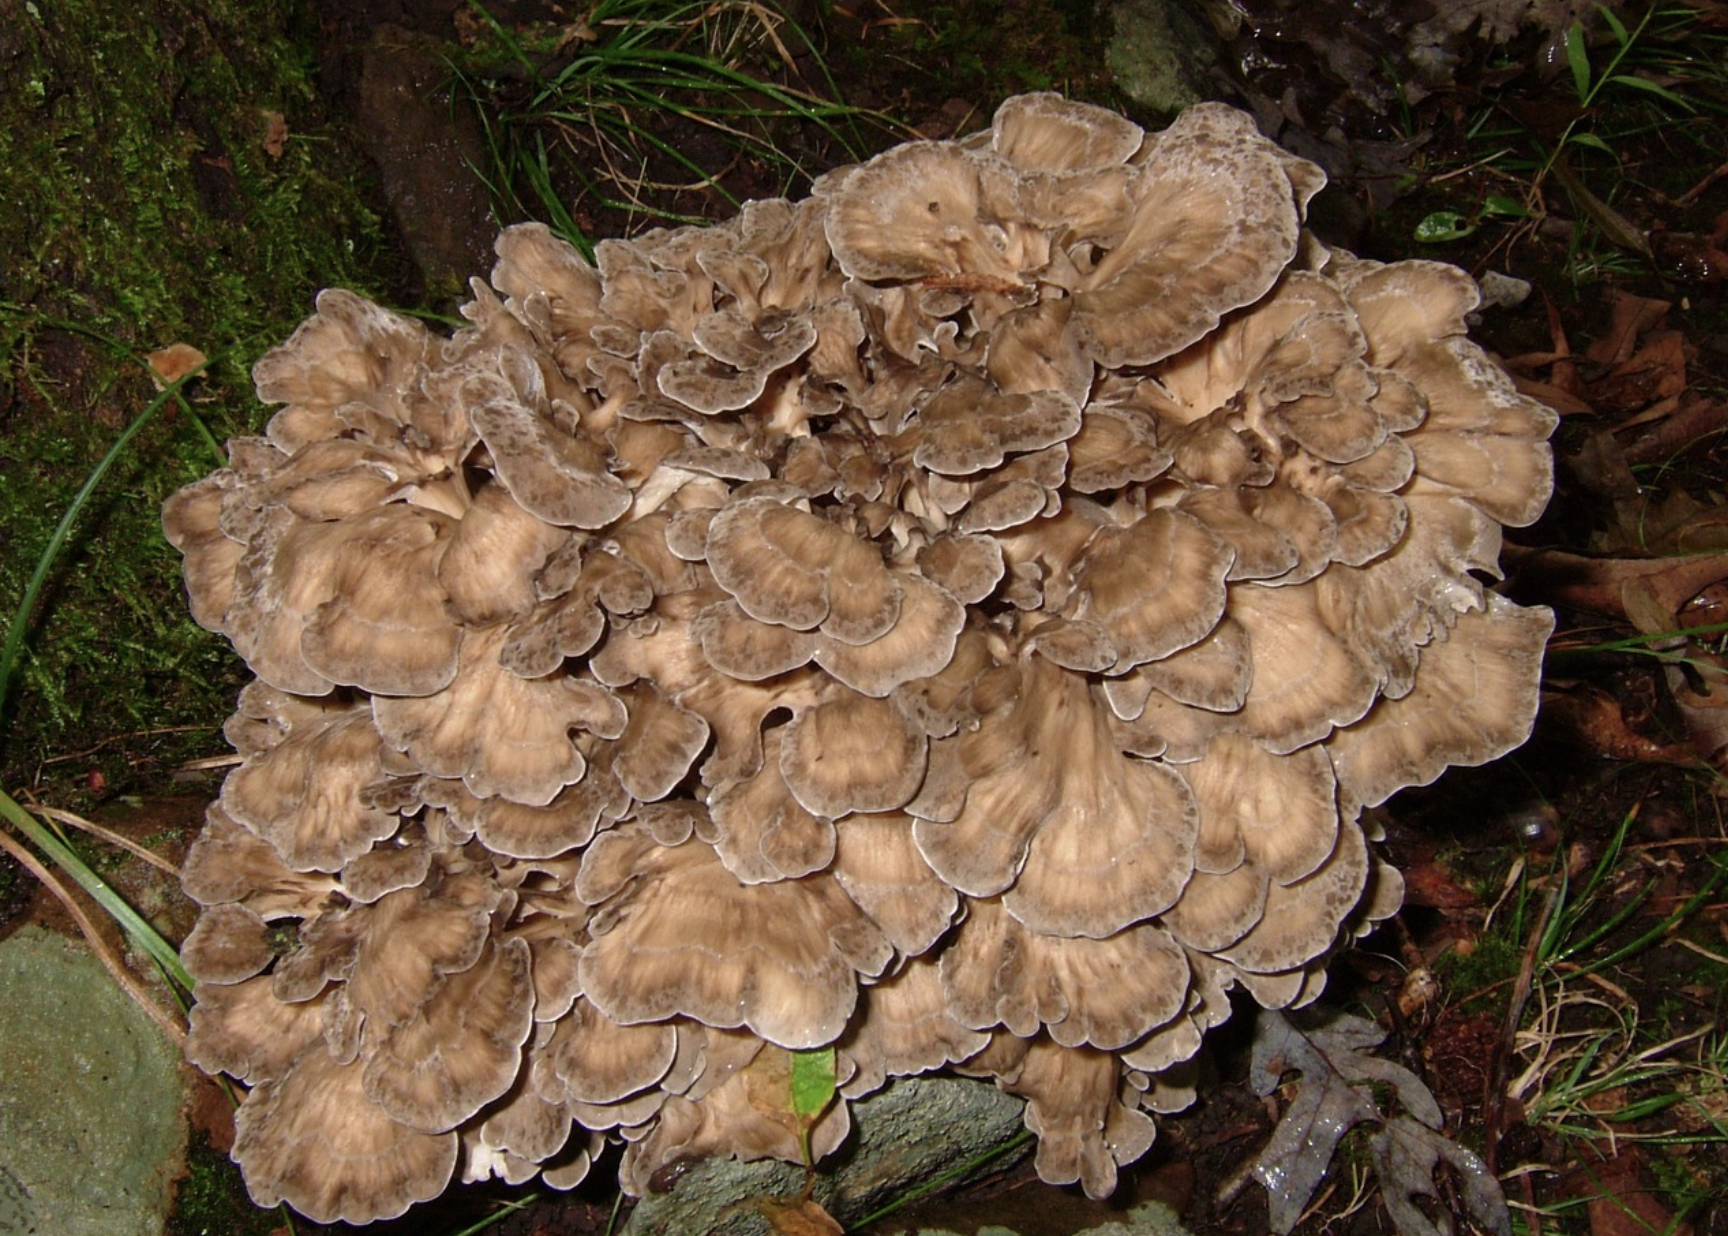 Grifola frondosa , also known as hen of the woods or maitake. Photo by  I. G. Safonov .